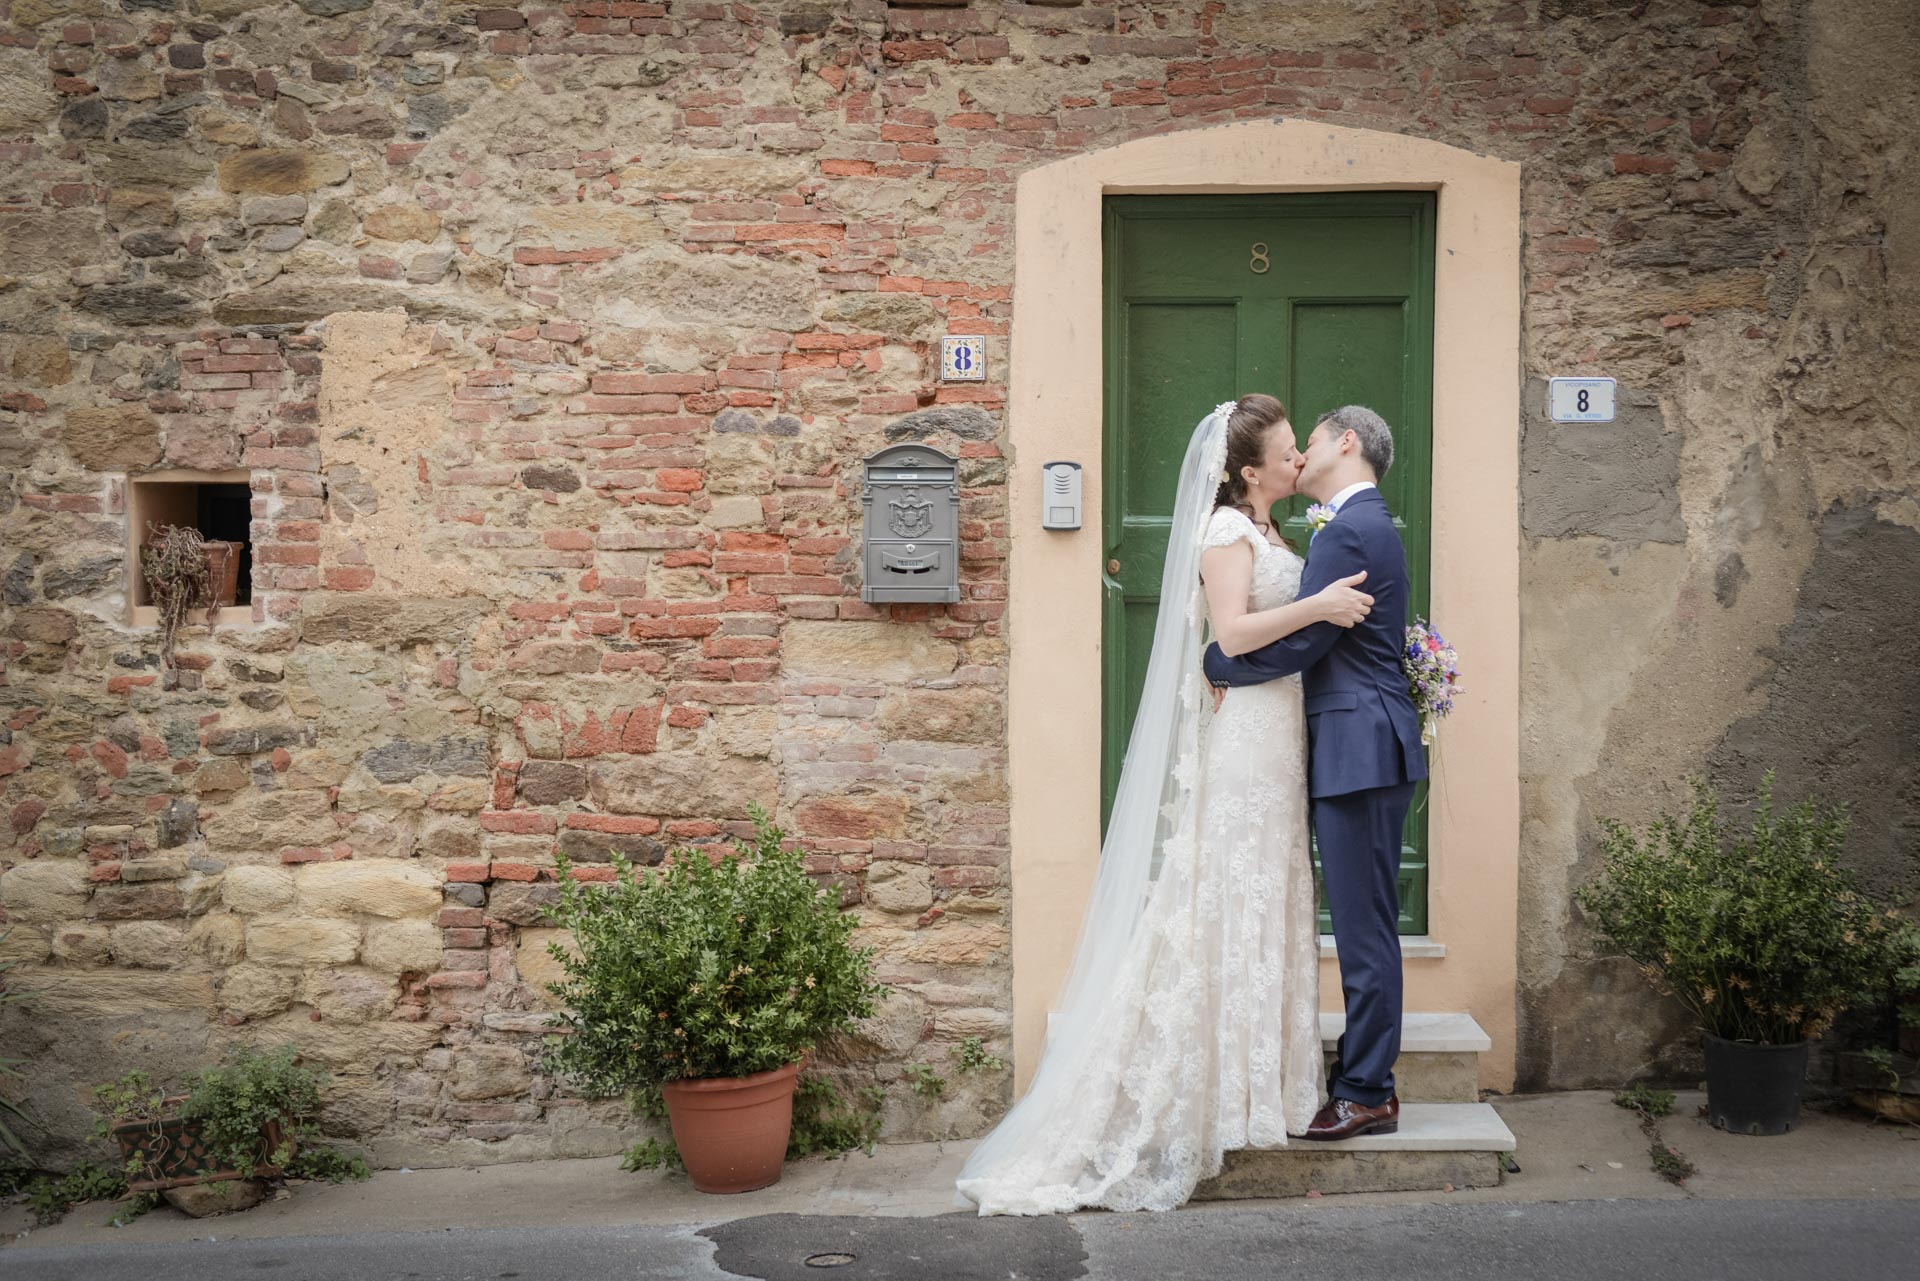 English Wedding in the Tuscan Countryside